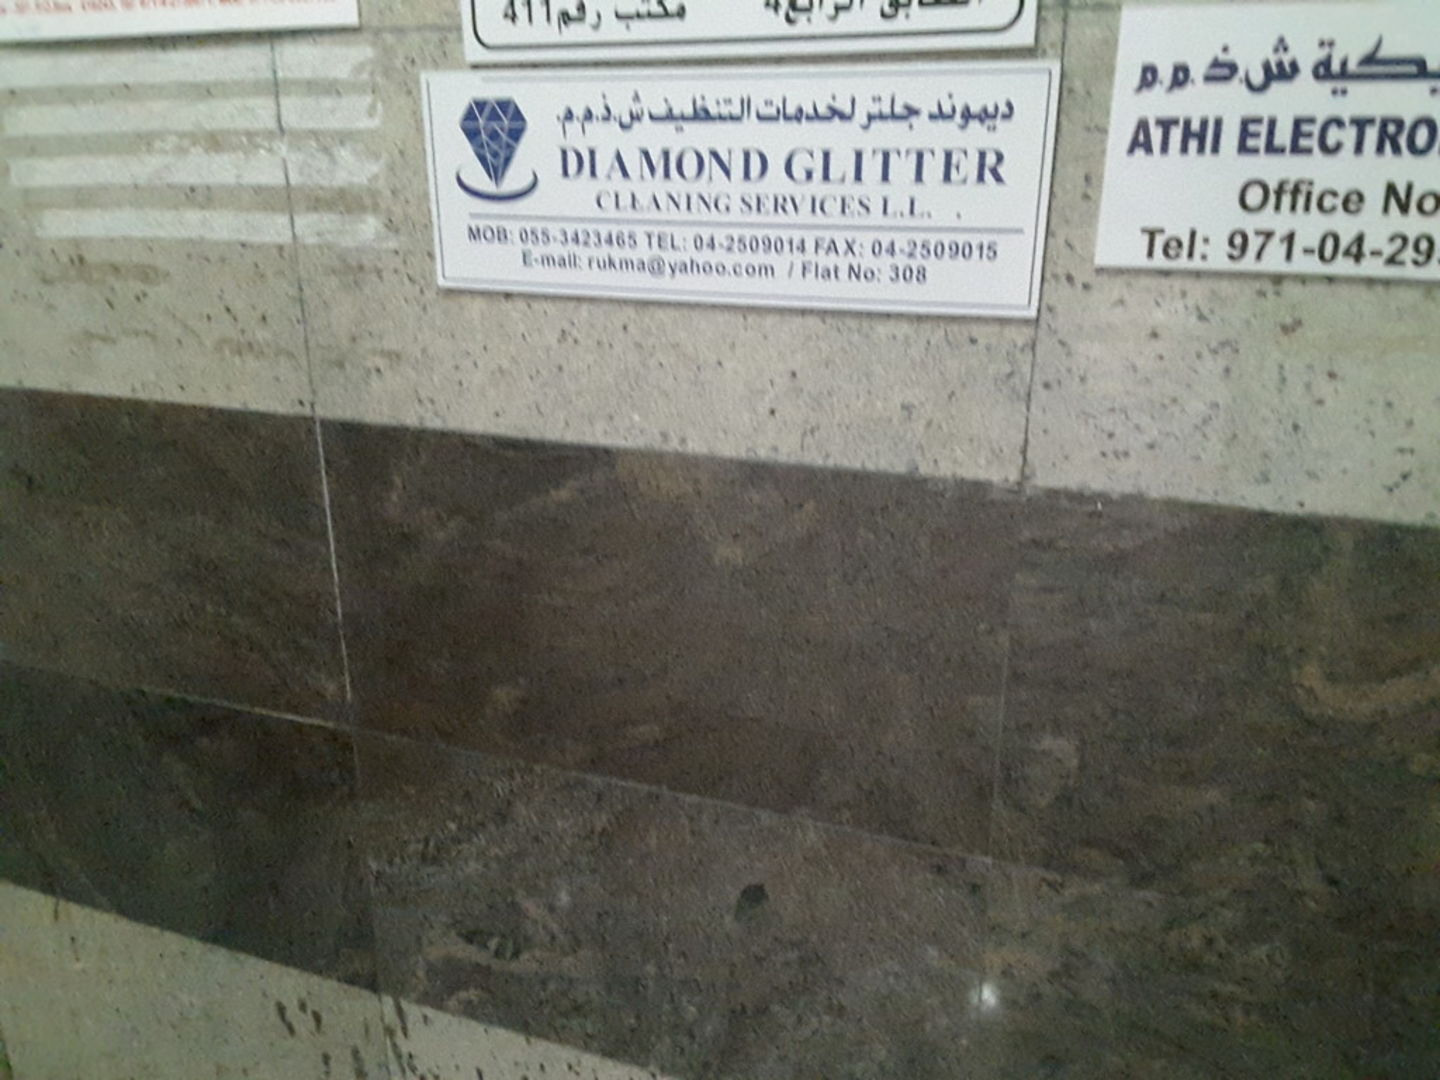 Walif-business-diamond-glitter-cleaning-services